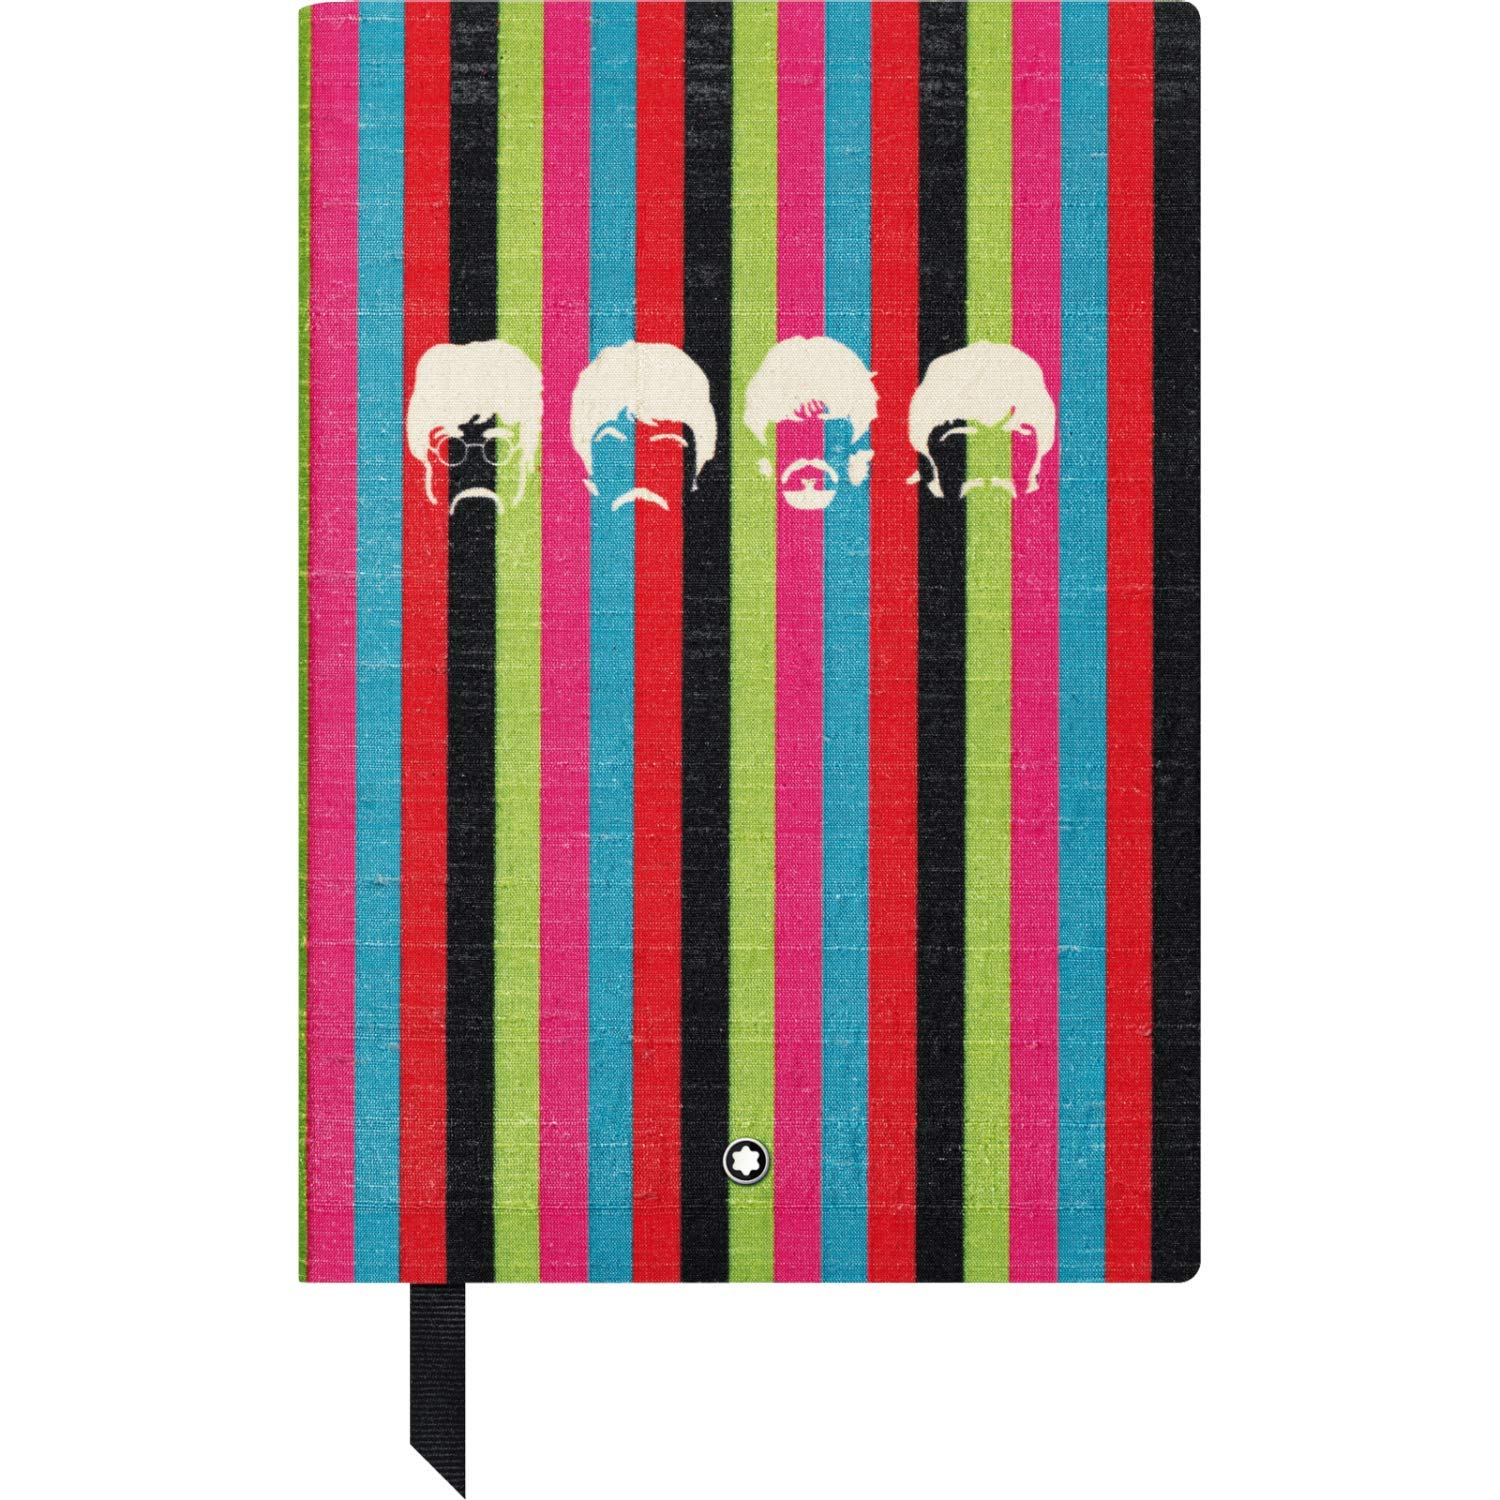 Montblanc The Beatles Fine Stationary Unisex Multi-Color Lined Leather Notebook Accessories 116400